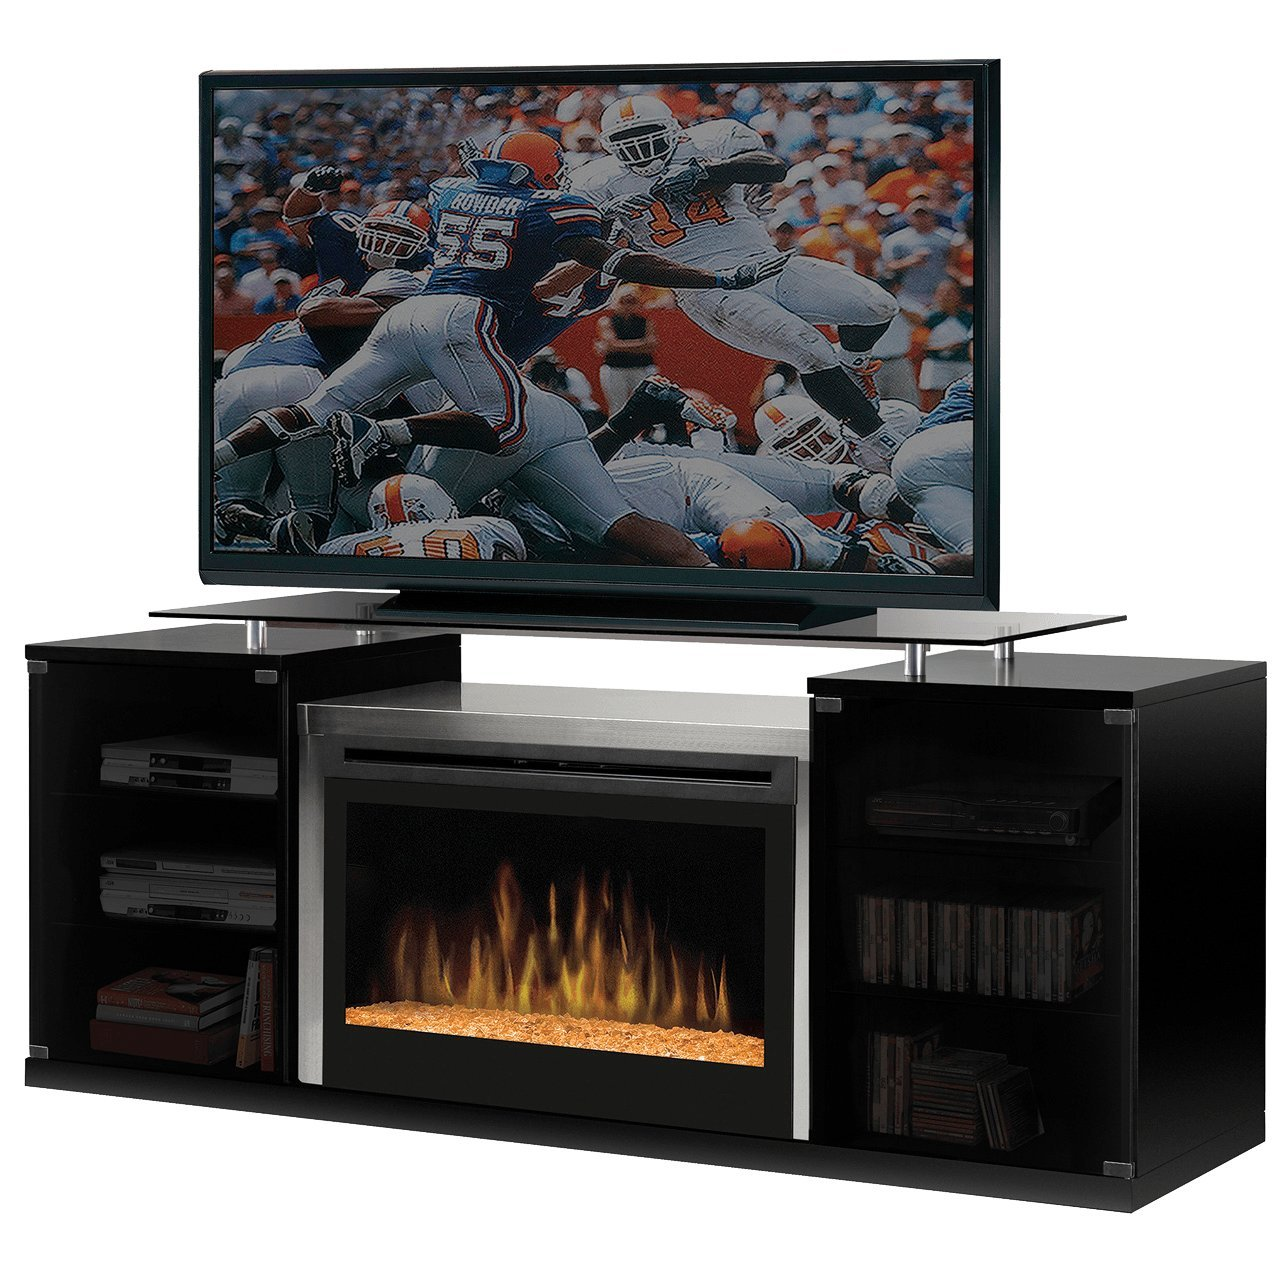 Amazon.com: Dimplex Marana TV Stand with Electric Fireplace in ...